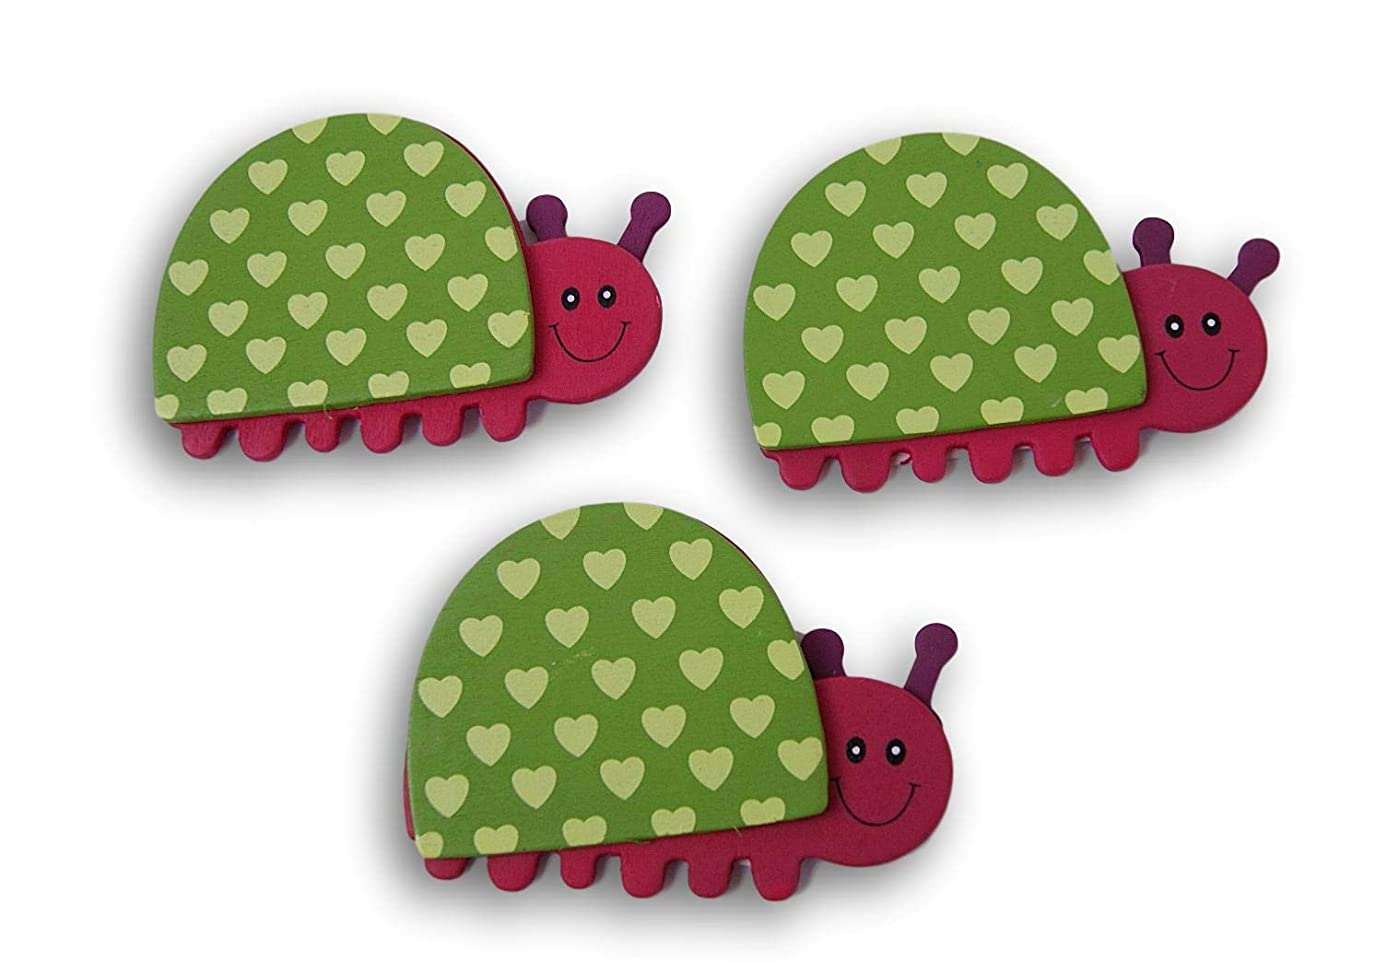 Natural Wood Painted Love Bug Cutouts - Set of 3-2.75 x 4 Inches